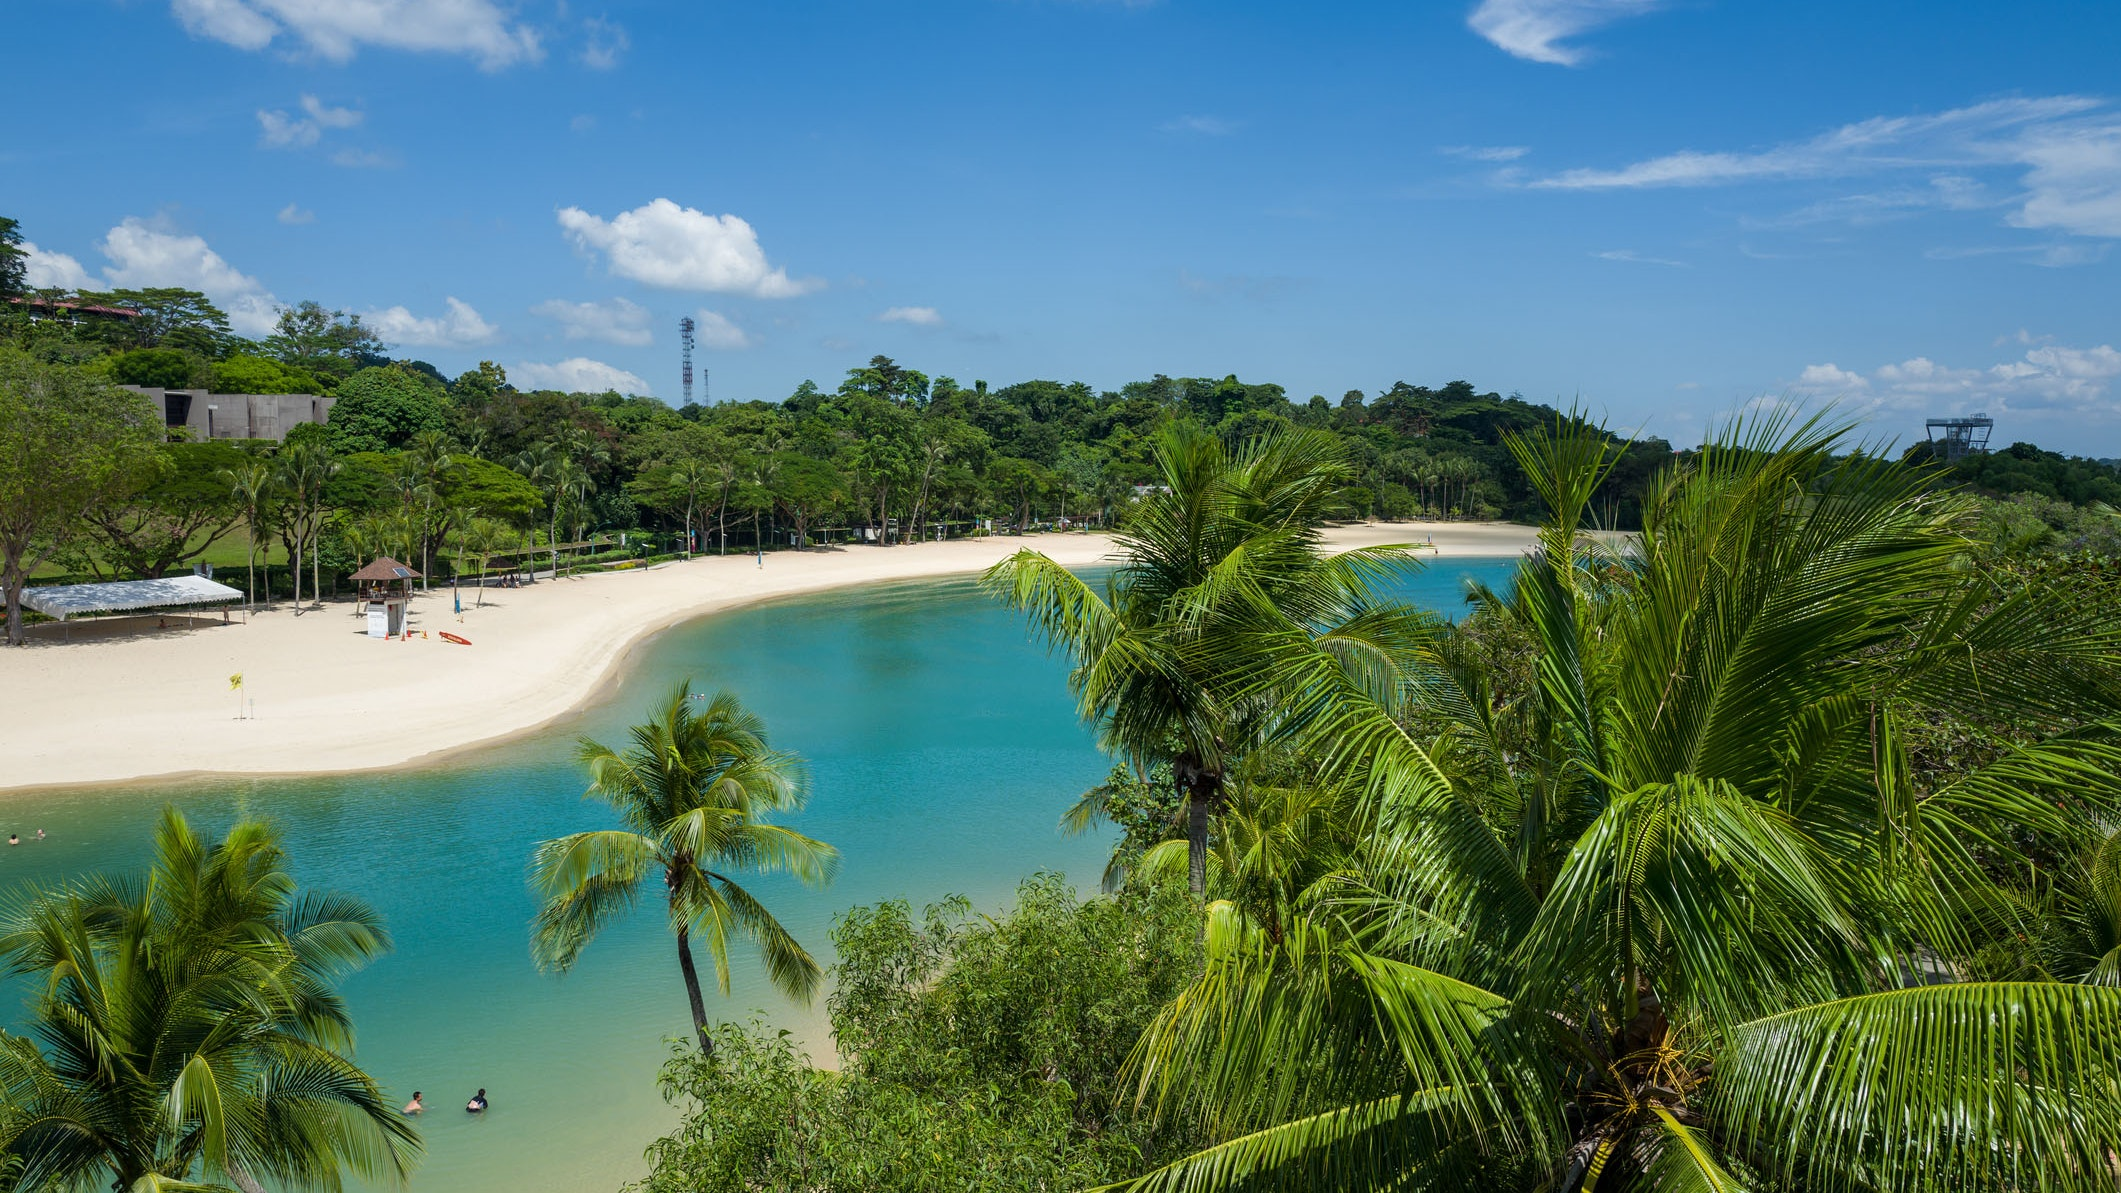 Whats On The Tiny Island Of Sentosa As Its Chosen For Trump Kim Summit 136427641058602601 180607093100